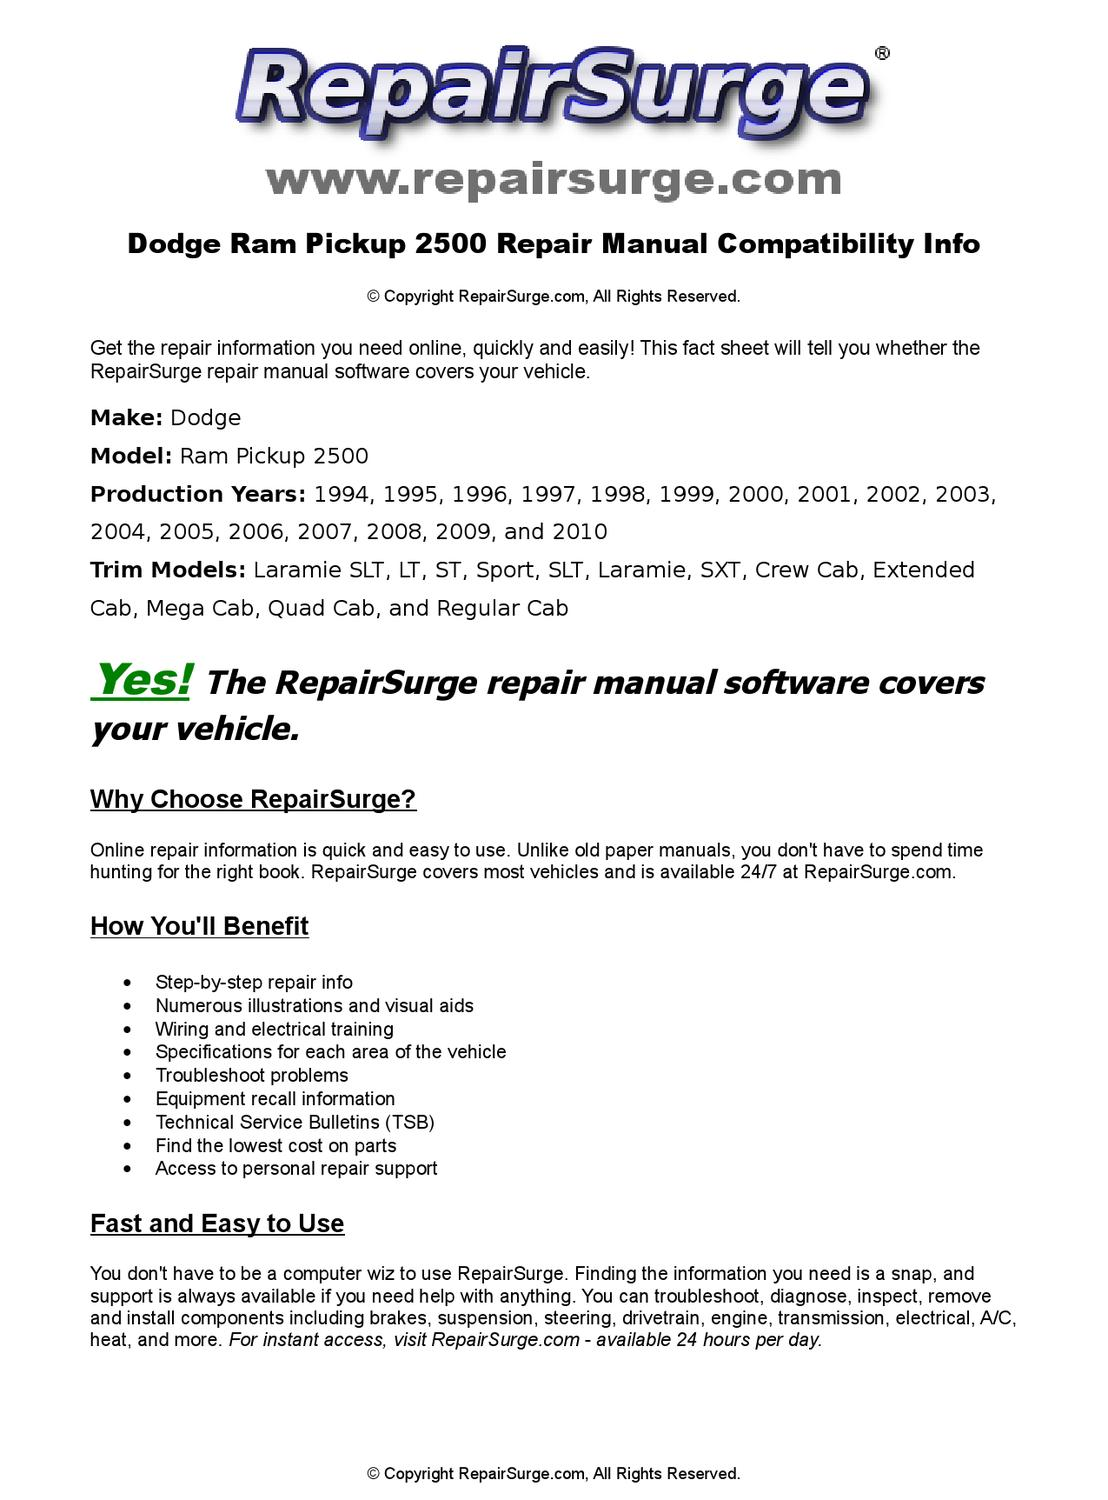 Dodge Ram Pickup 2500 Online Repair Manual For 1994, 1995, 1996, 1997,  1998, 1999, 2000, 2001, 2002, by RepairSurge - issuu